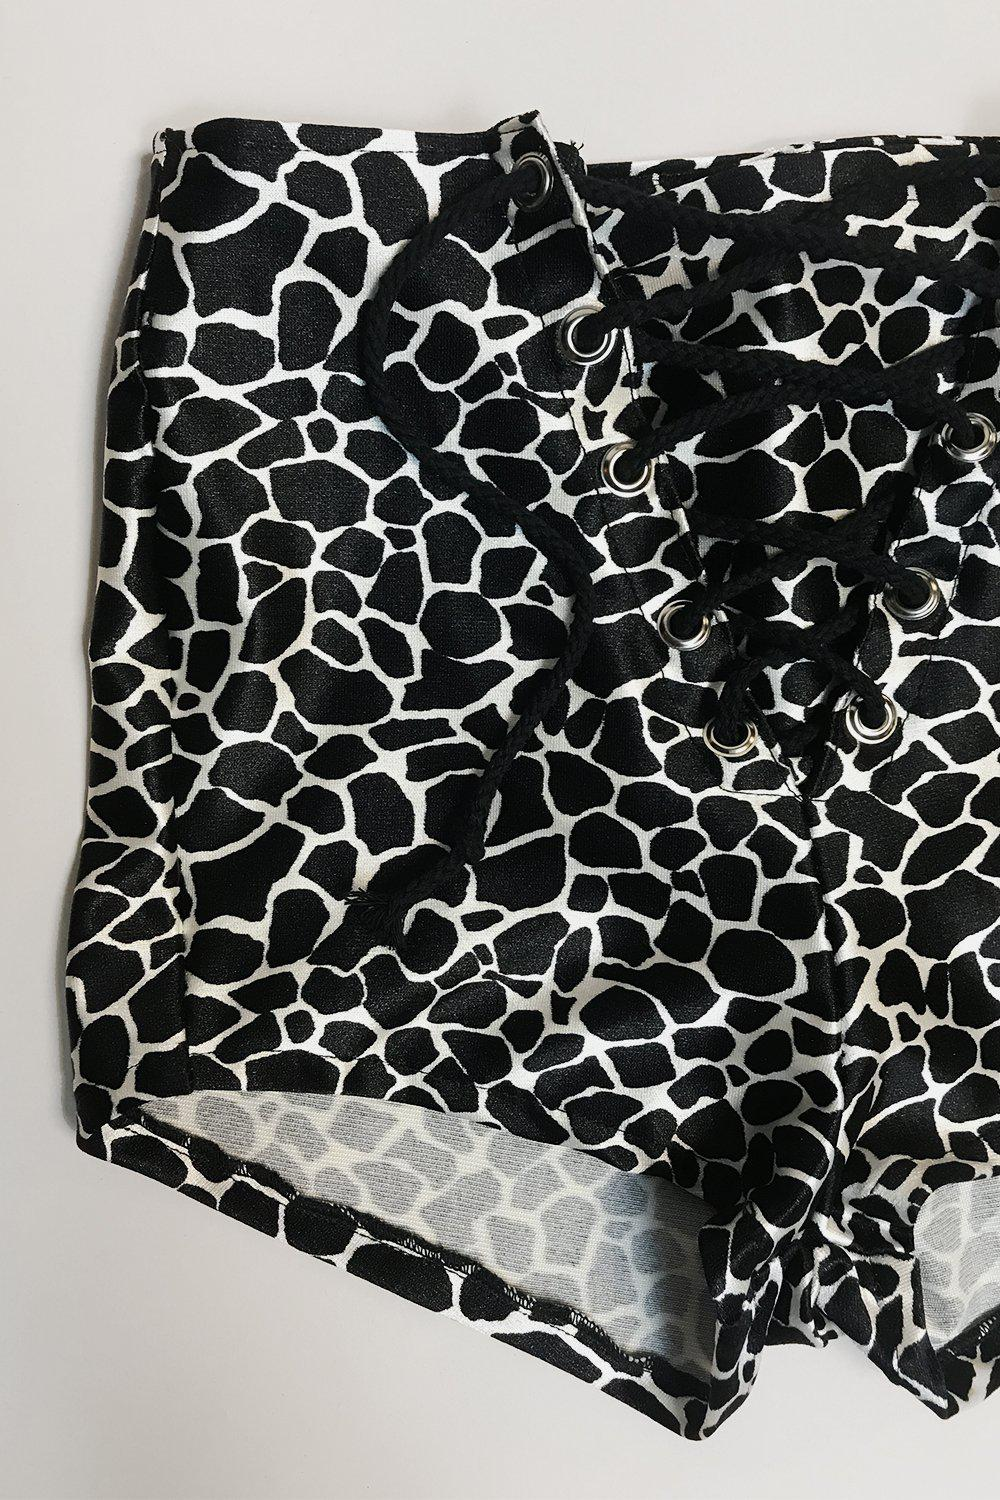 Nylon Spandex Grommet Shorts Size XS・Wild Animal, bottoms, BAD VIBES, BACKBITE